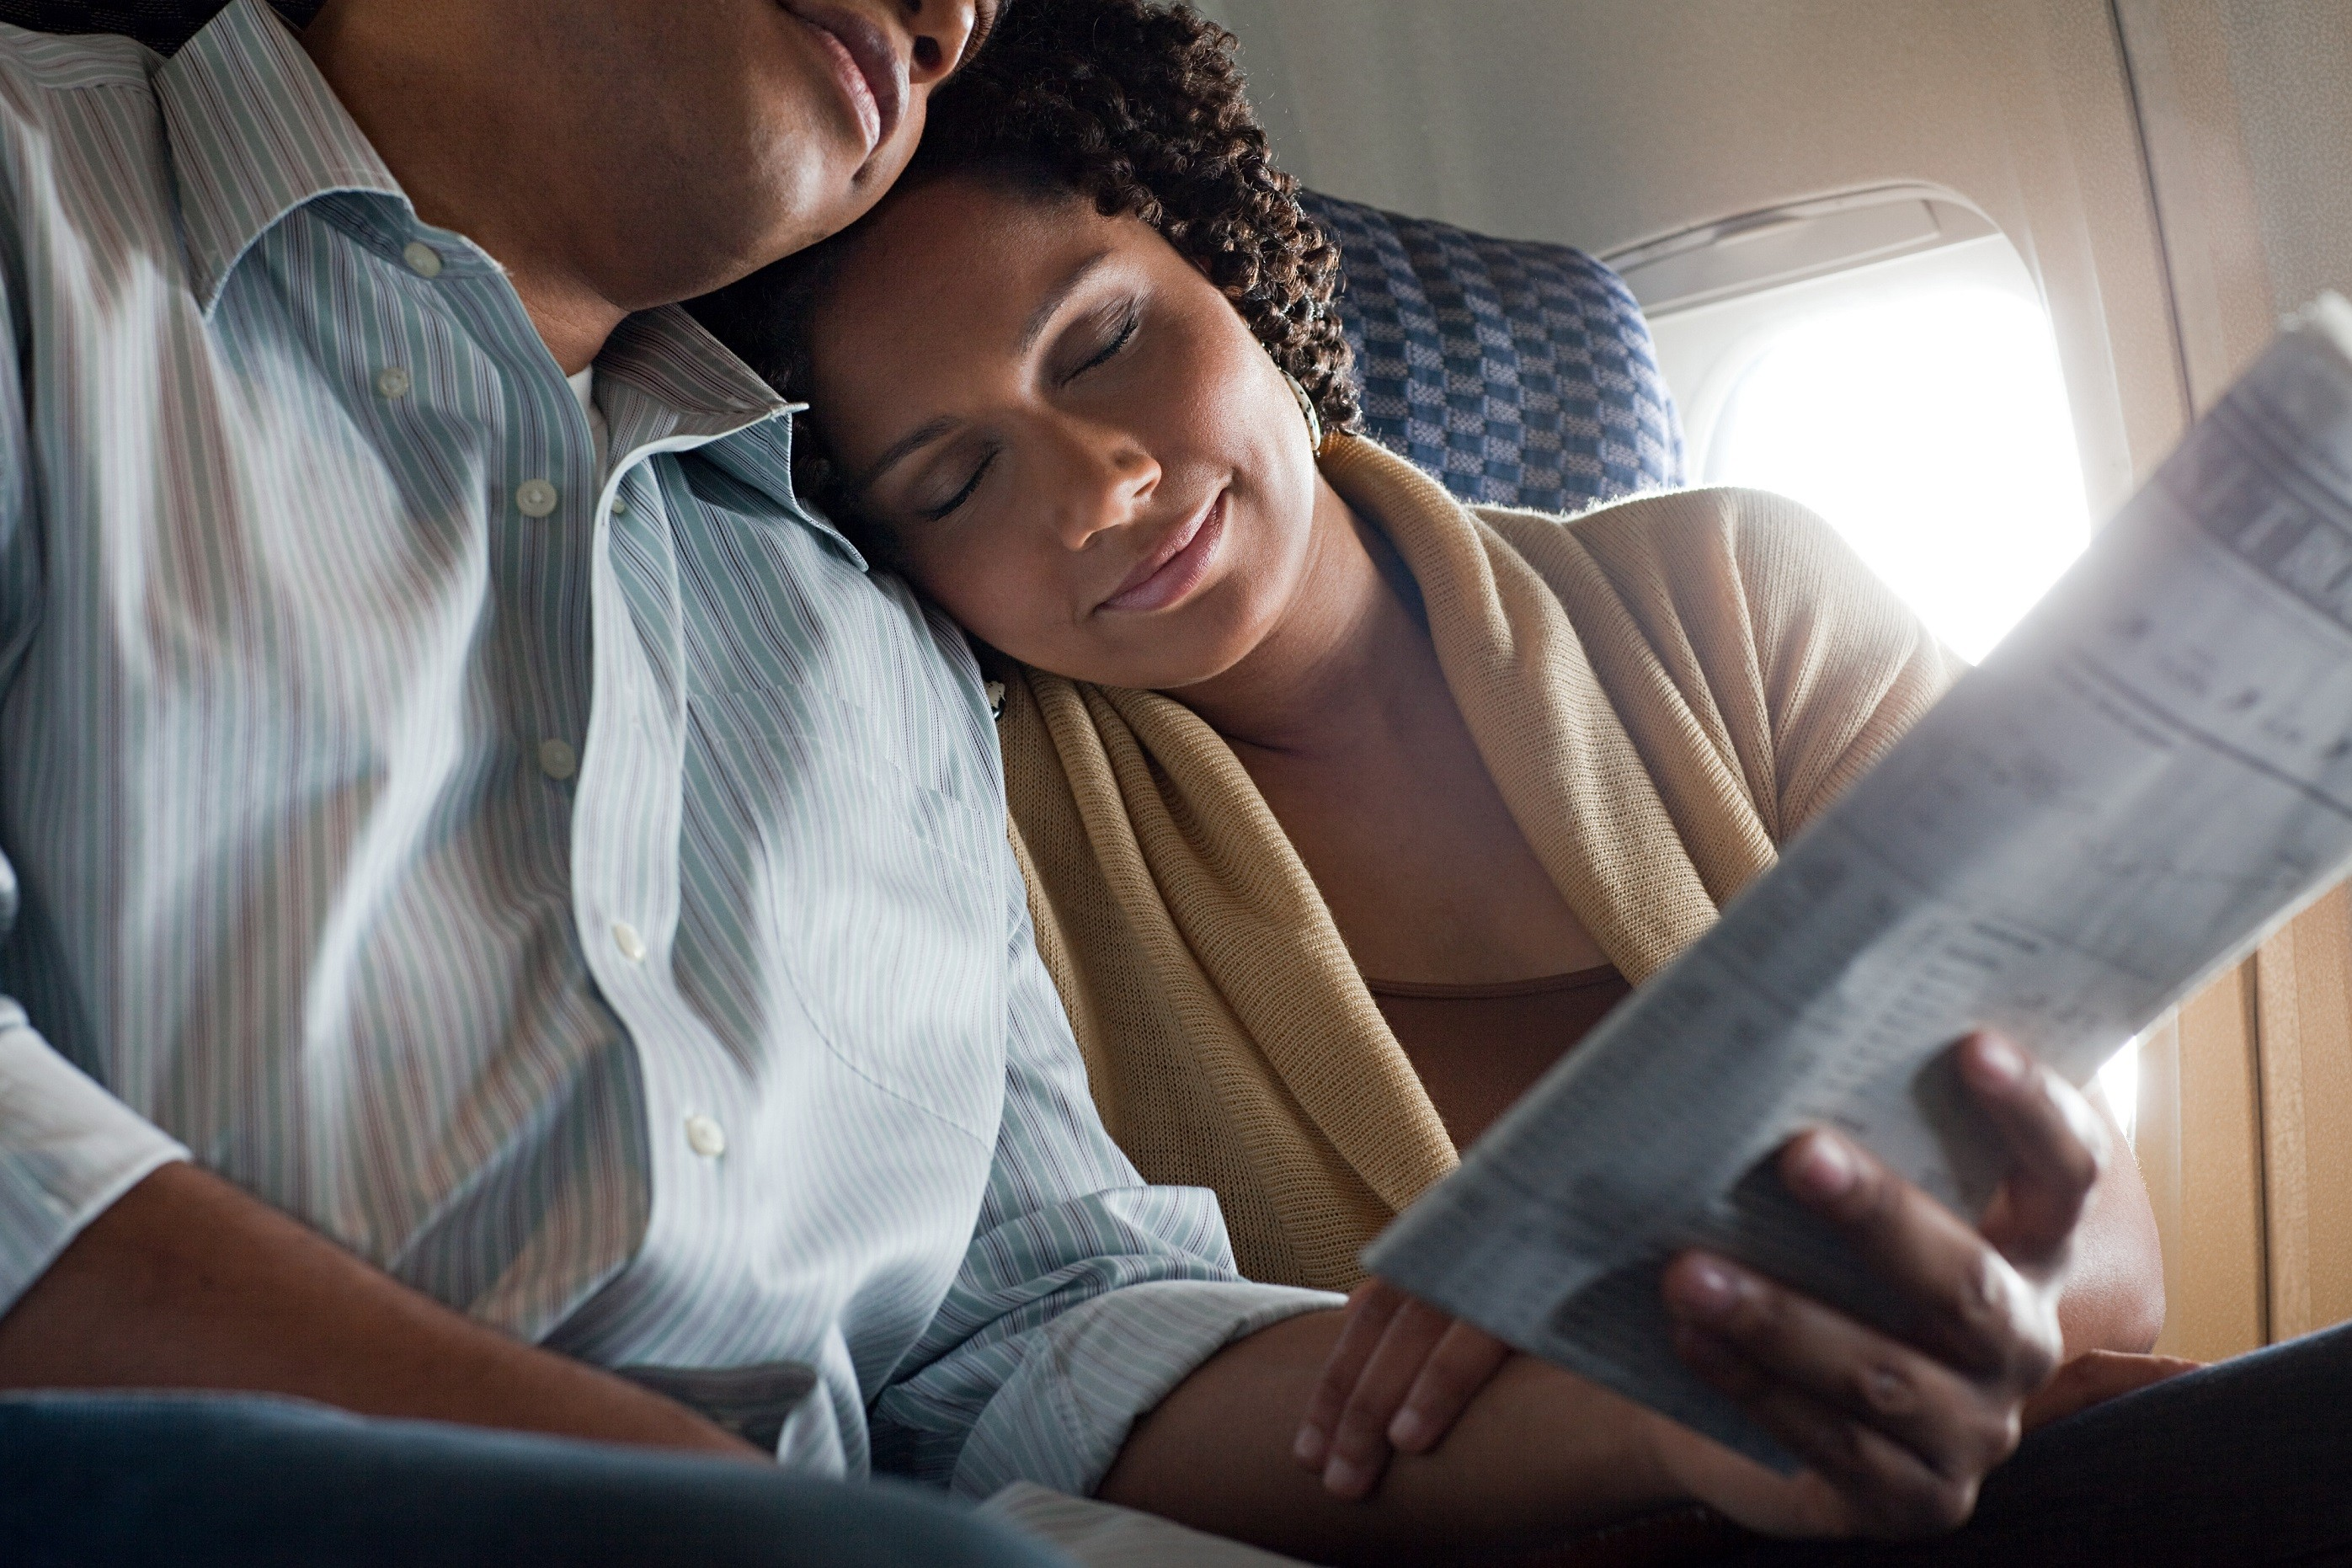 Couple asleep on a plane